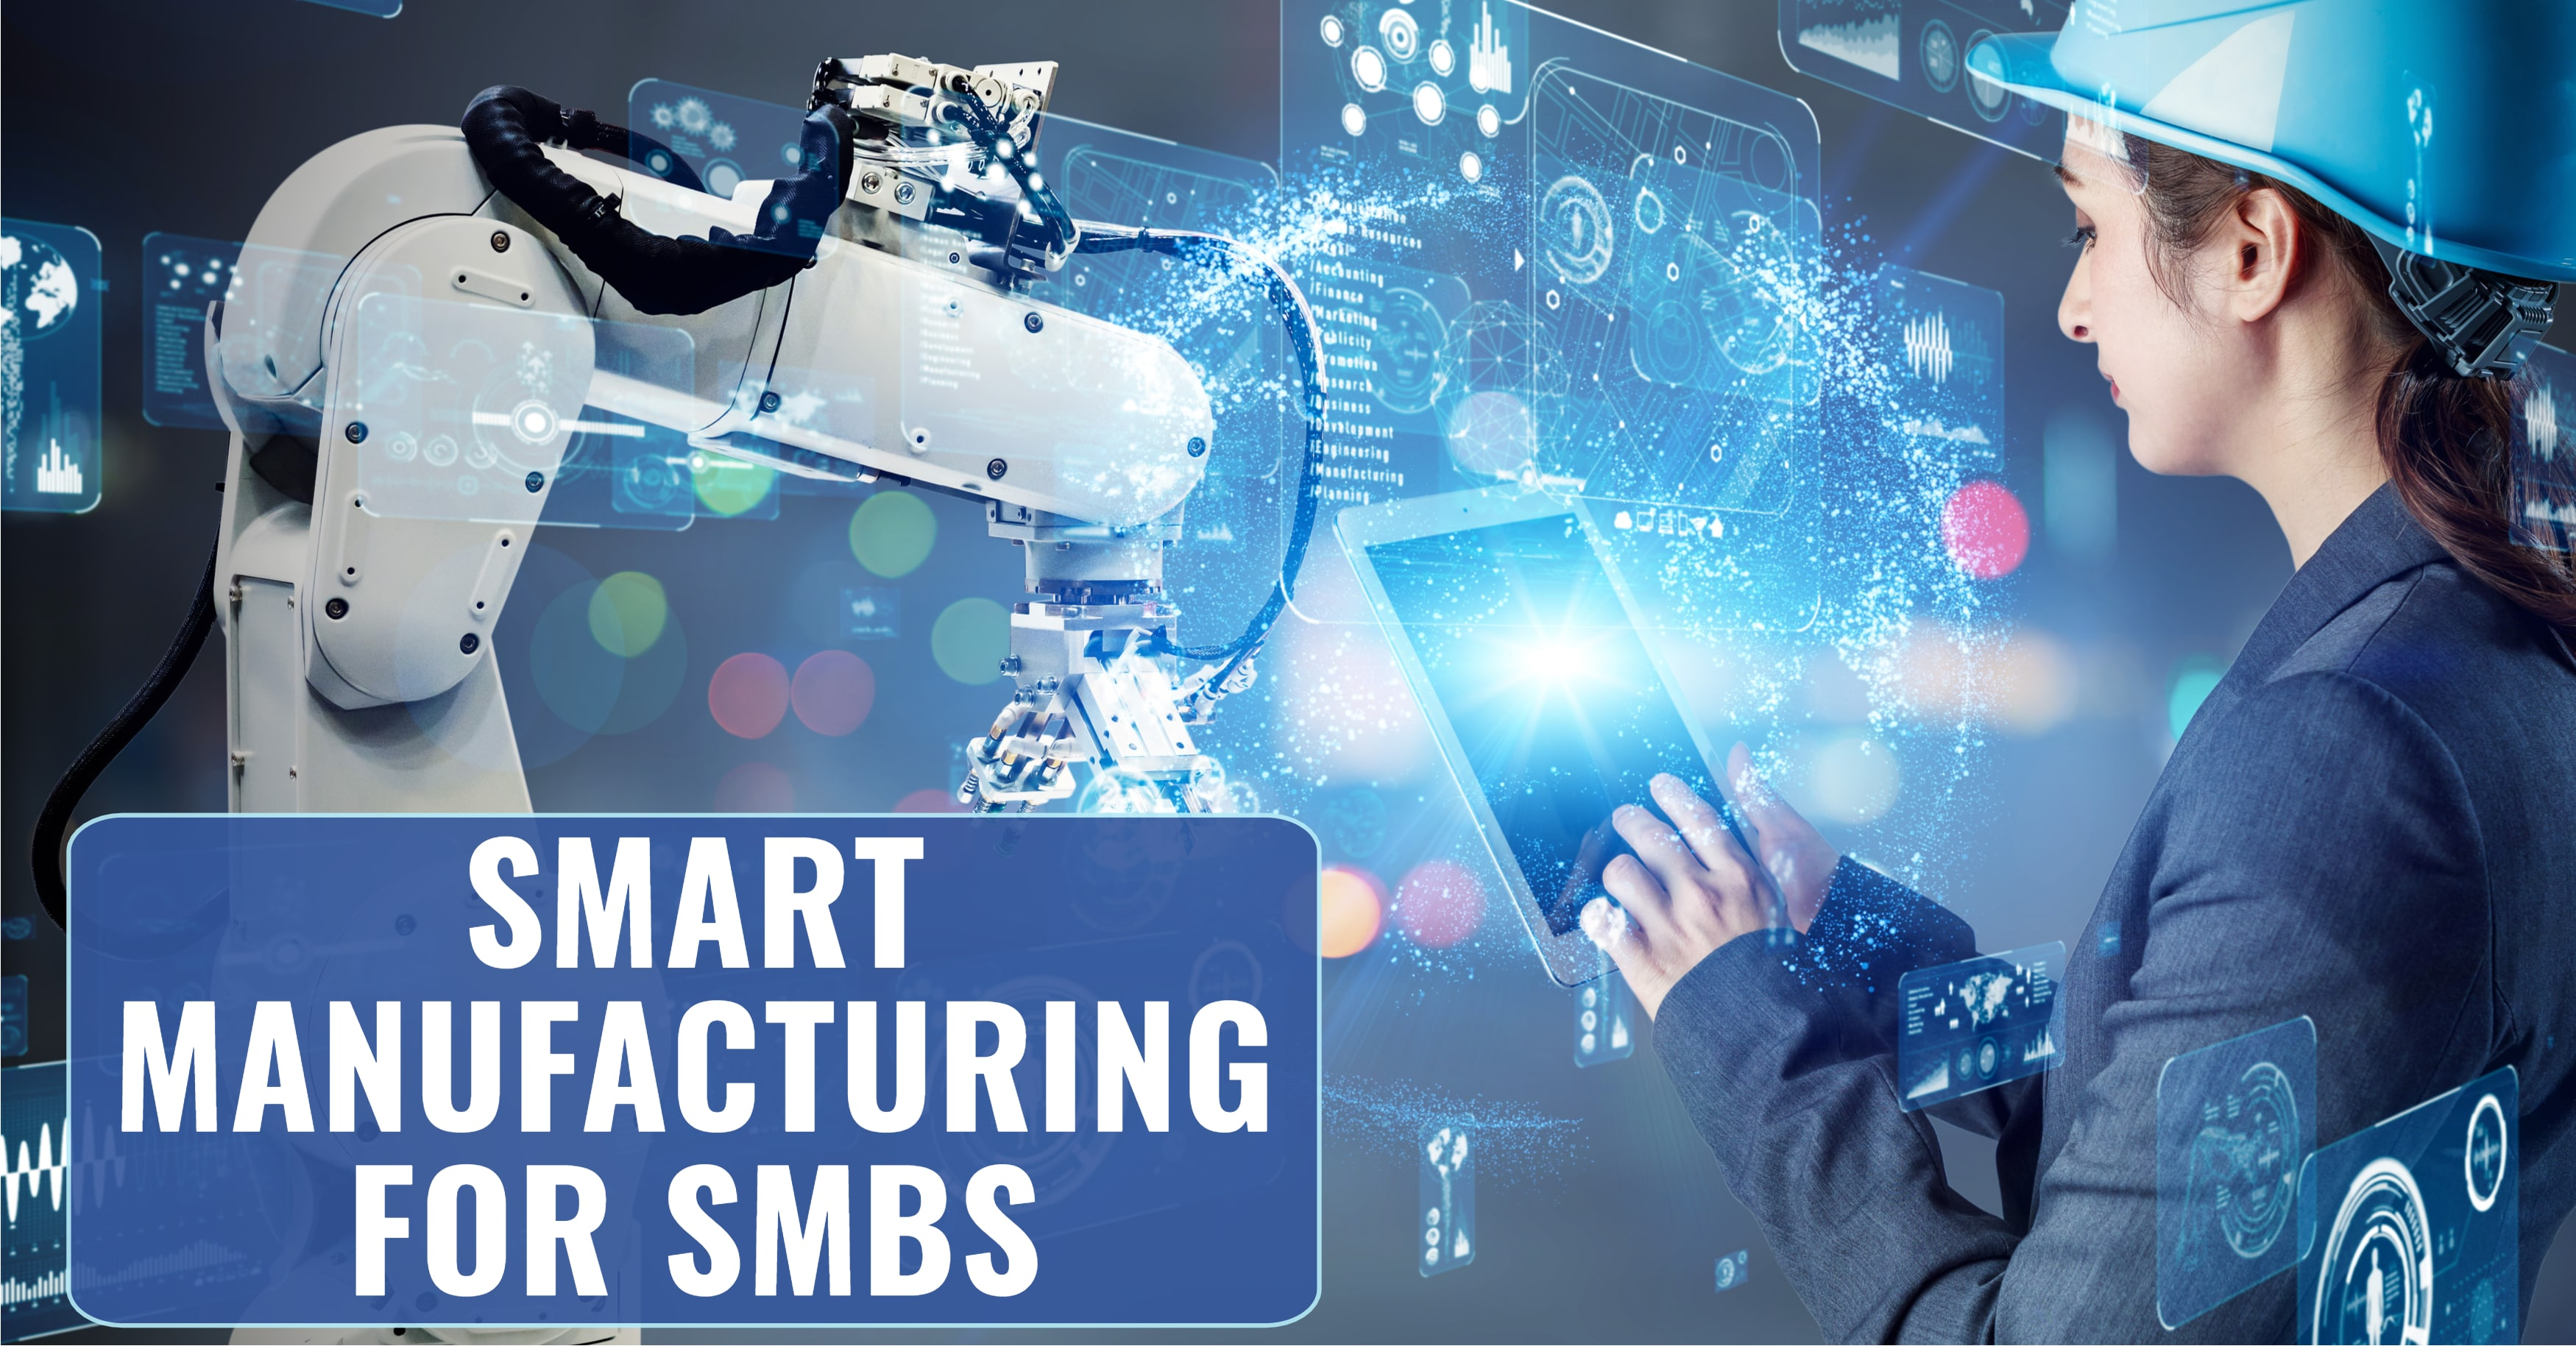 Why Small Manufacturers Need Digital Transformation